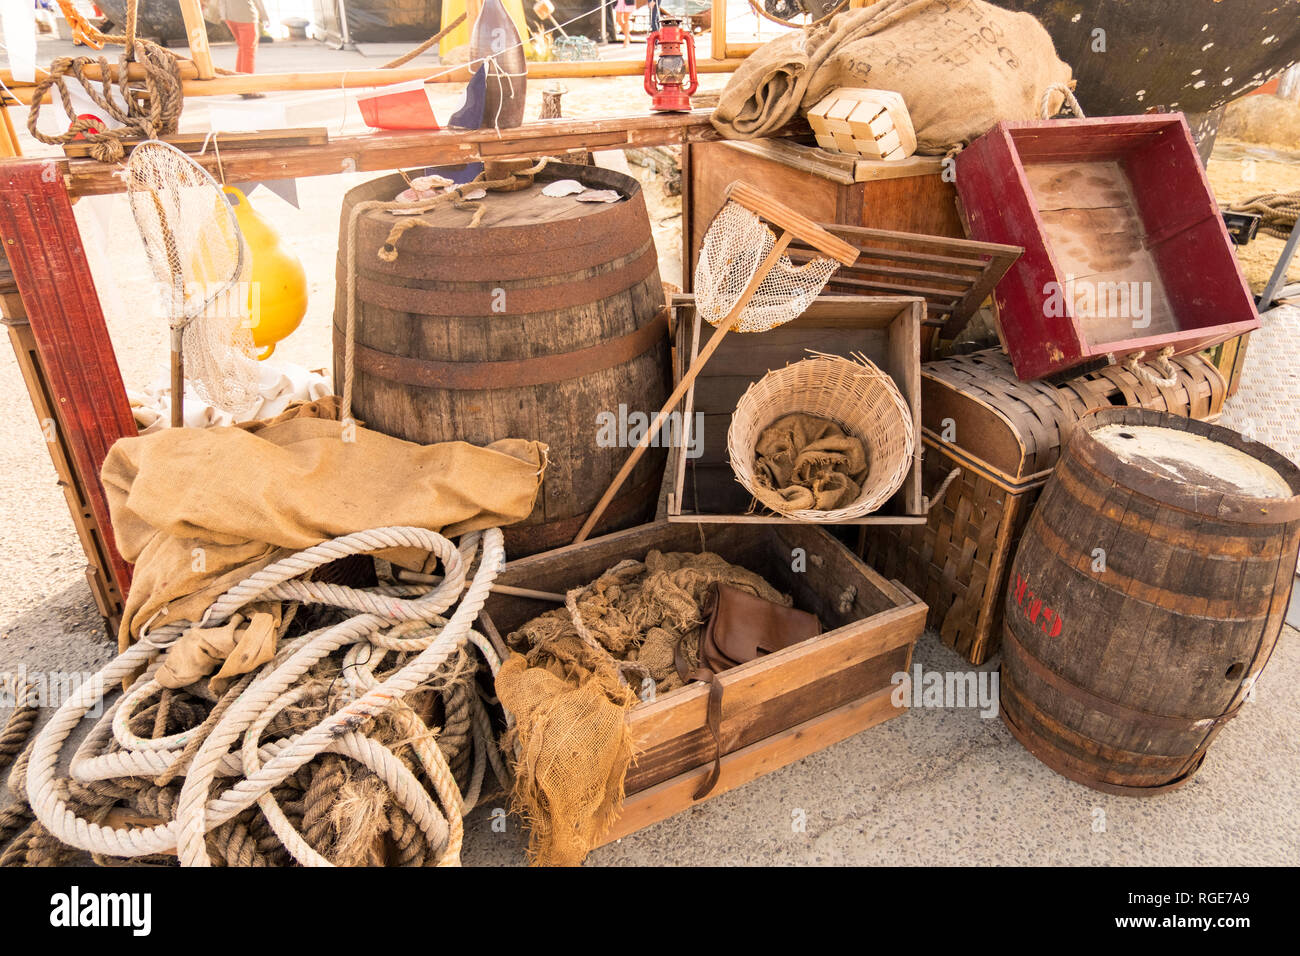 A Vintage Group with marine life style objects and of Old Nautical Boat Equipment exhibited in port of Granville, Normandy, France - Stock Image